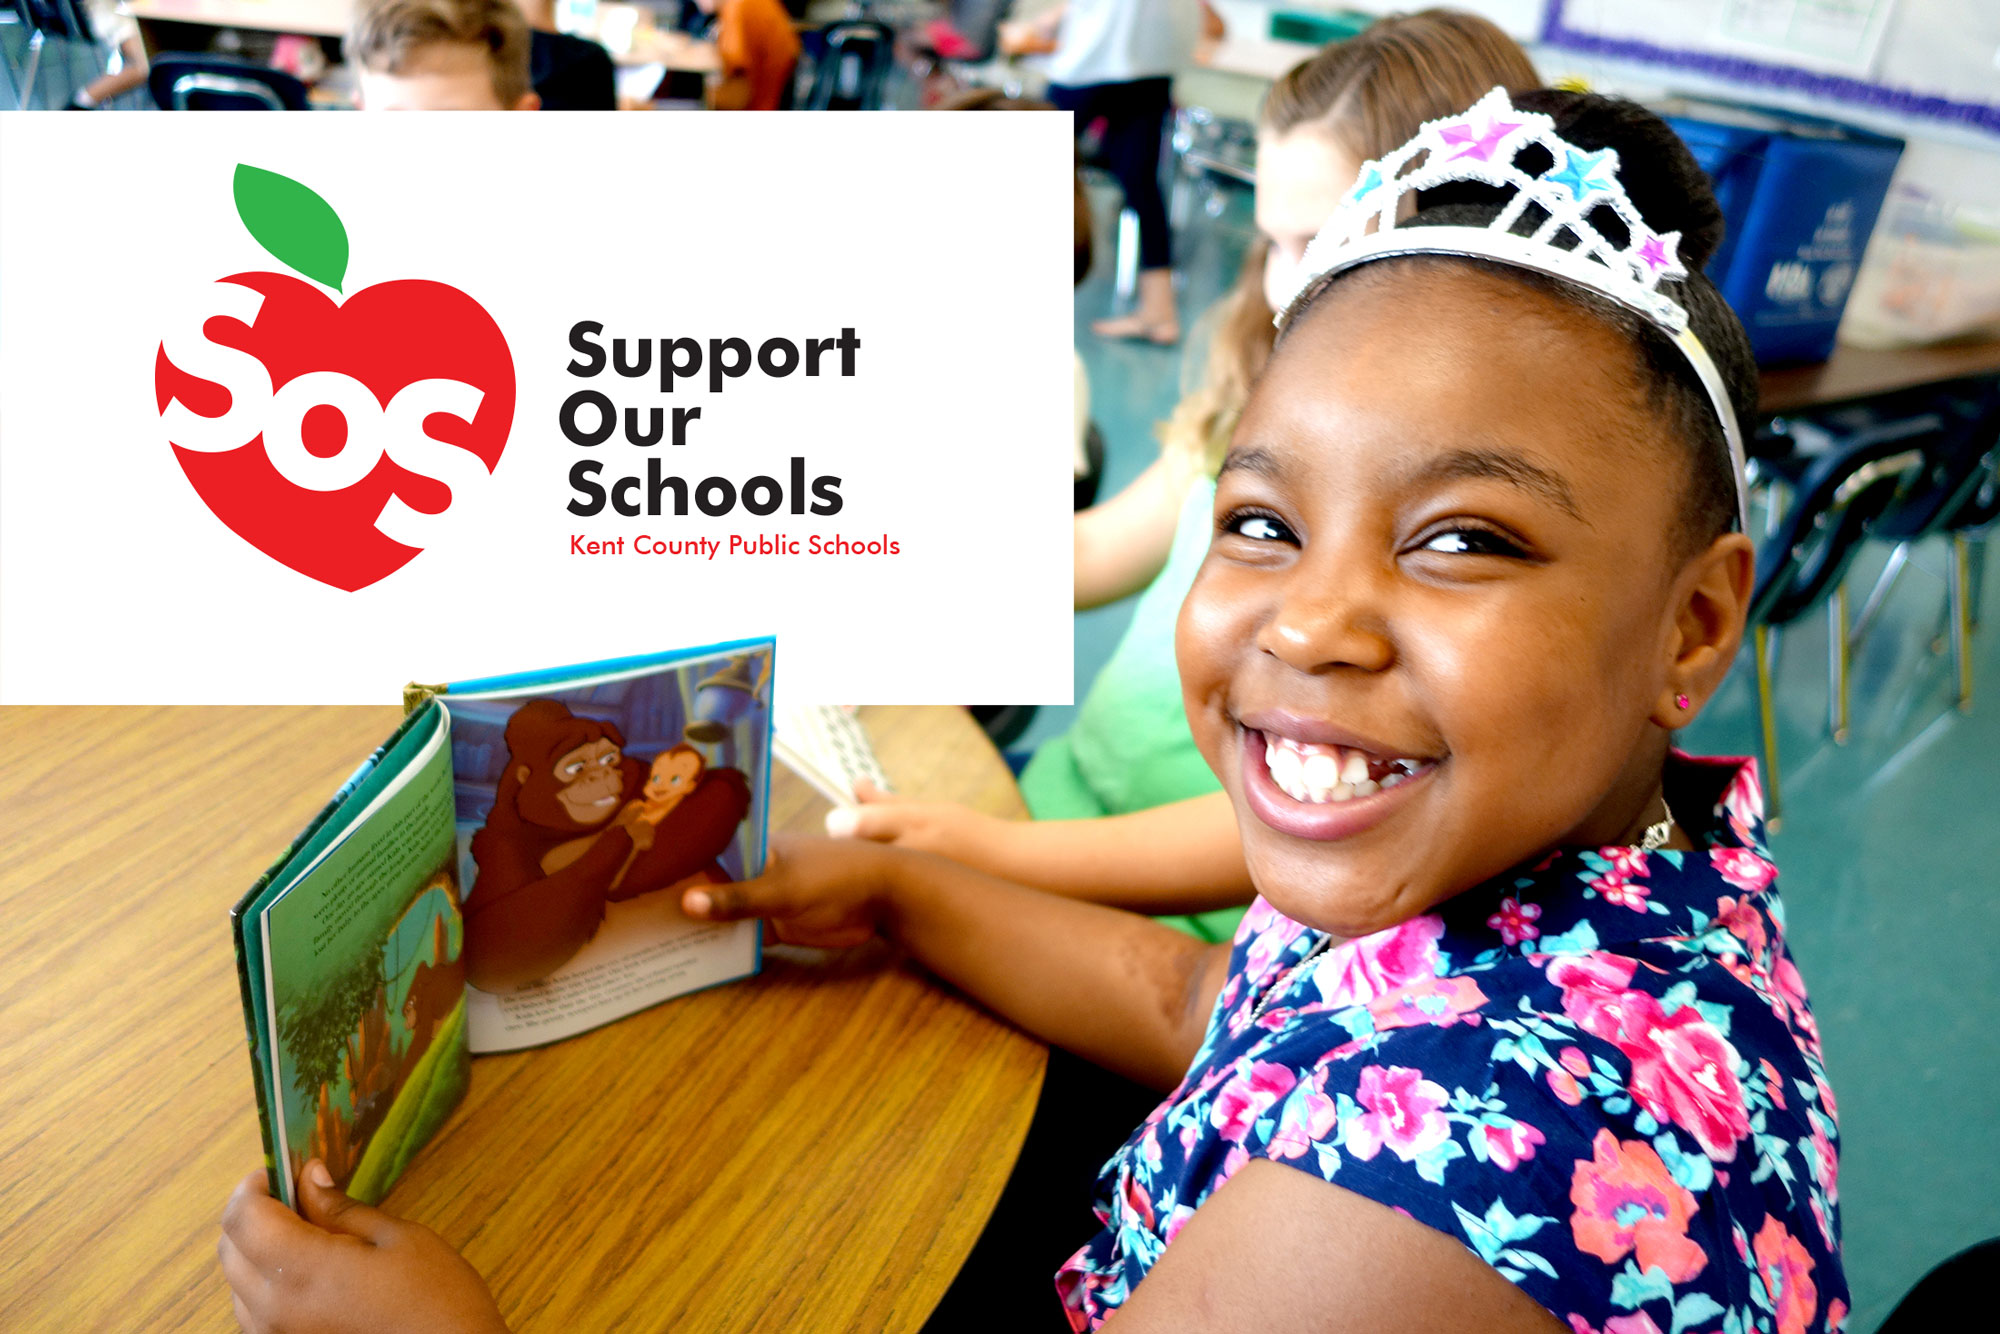 KCPS Support Our Schools